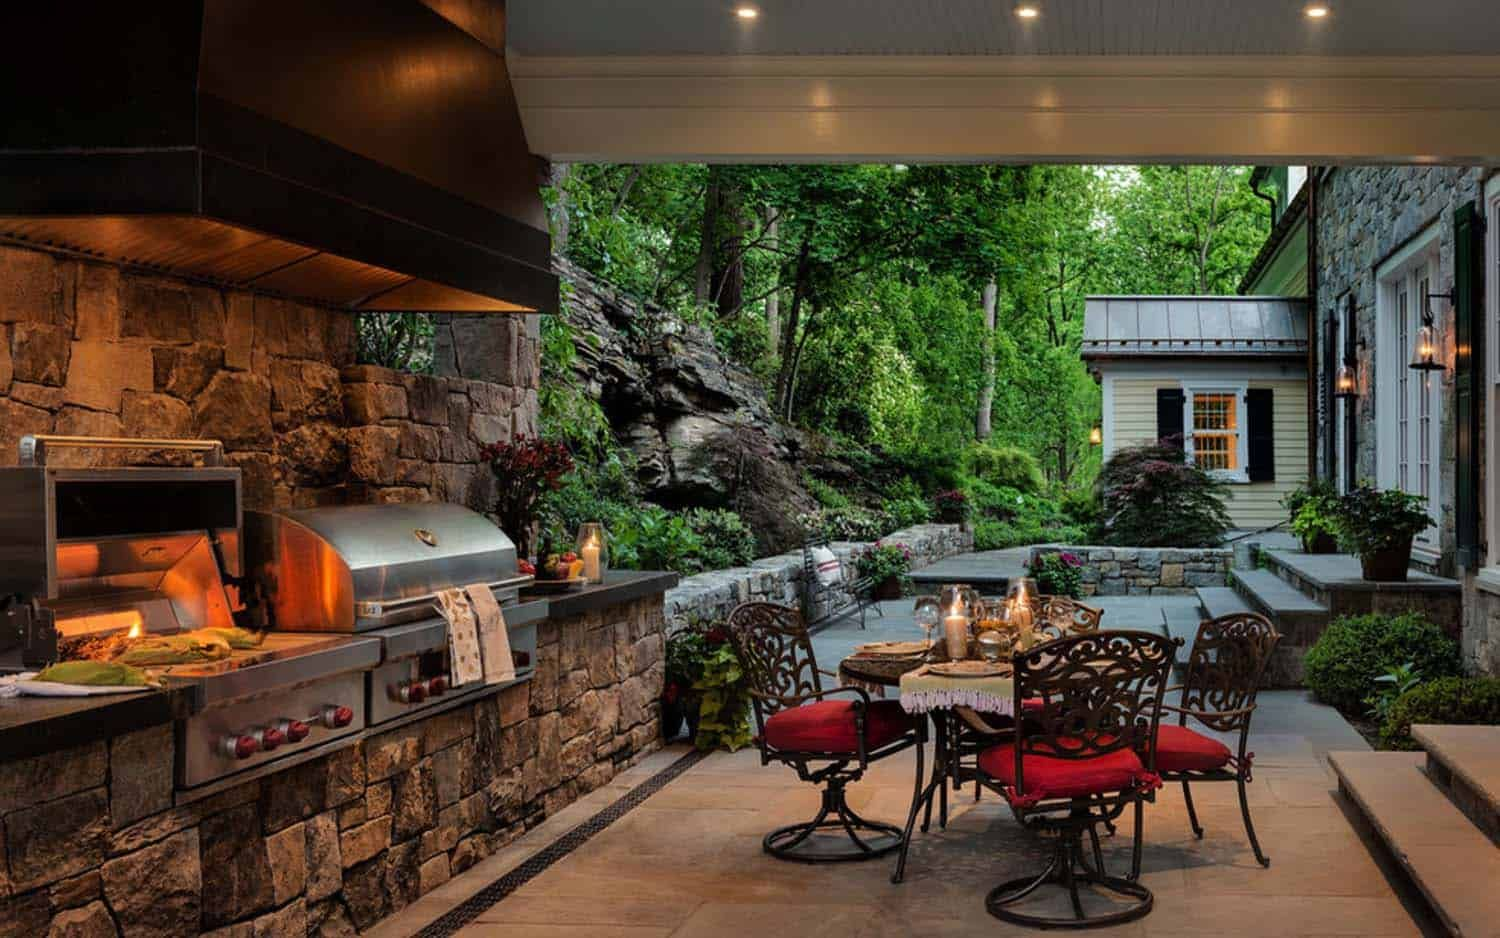 15+ Farmhouse Style Outdoor Kitchens That Will Blow Your ... on Farmhouse Outdoor Living Space id=72474